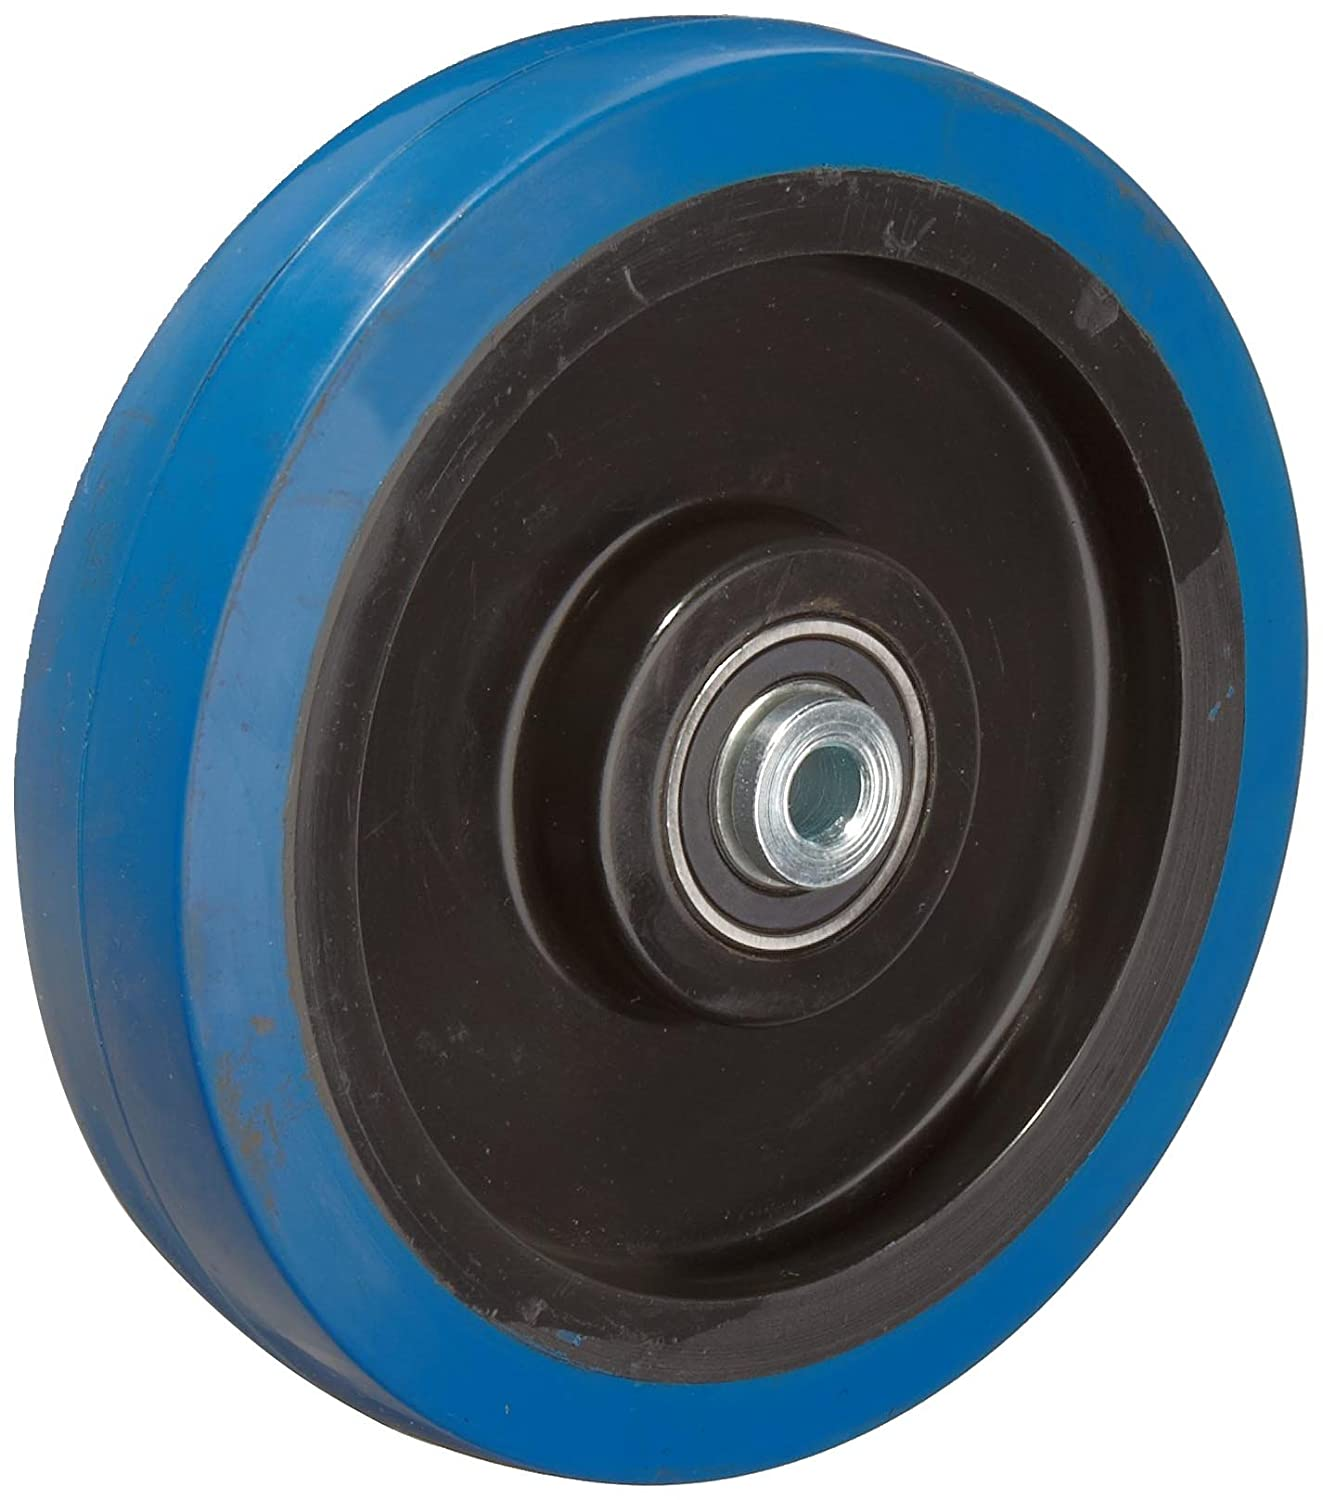 RWM Casters Signature Premium Rubber Wheel Precision Ball Bearing